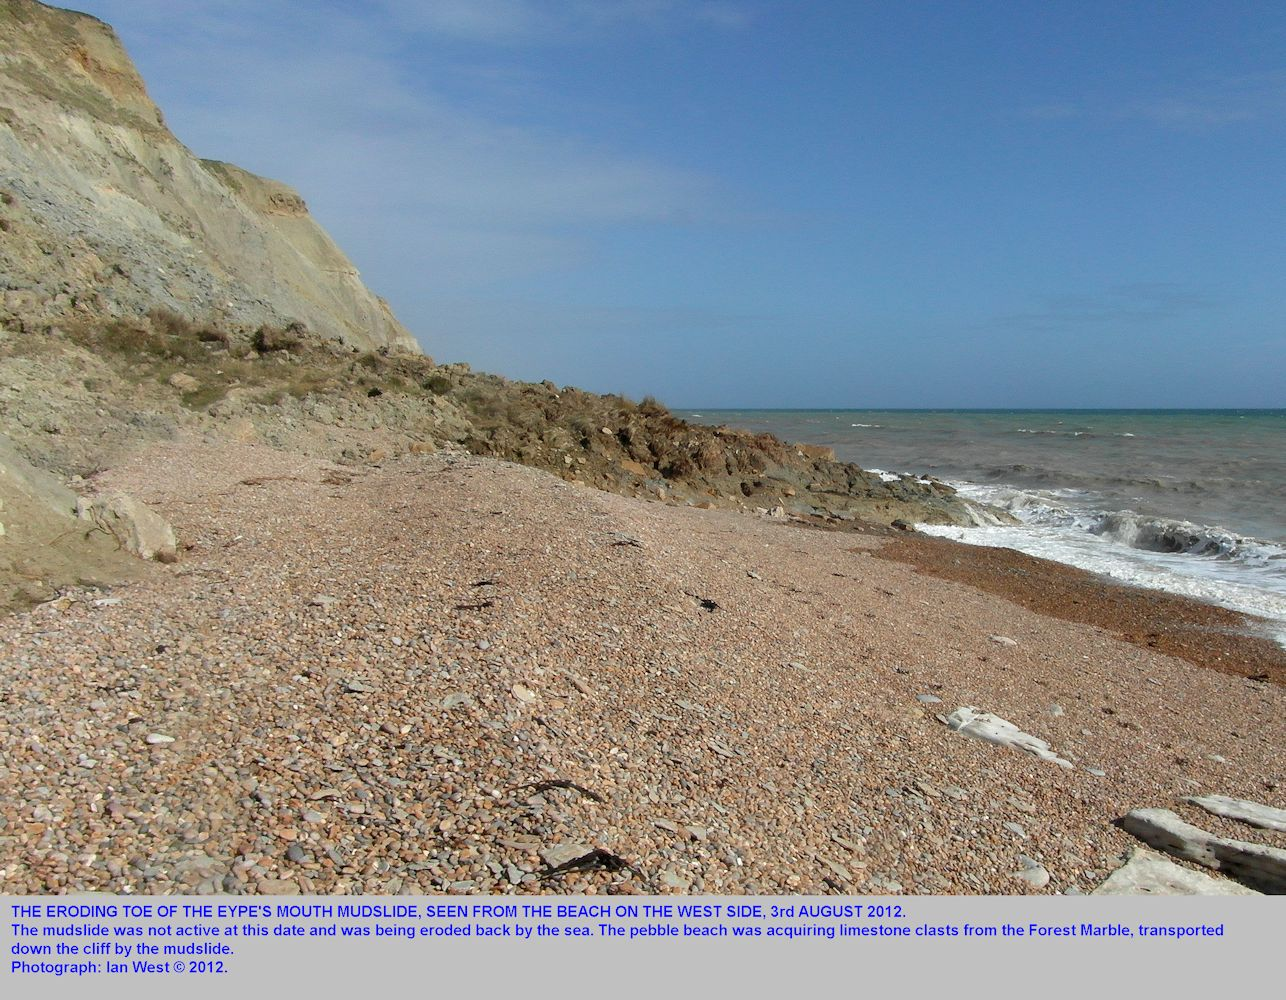 The eroding toe of the mudslide at Fault Corner, near Eype's Mouth, near Bridport, Dorset, 3rd August 2012